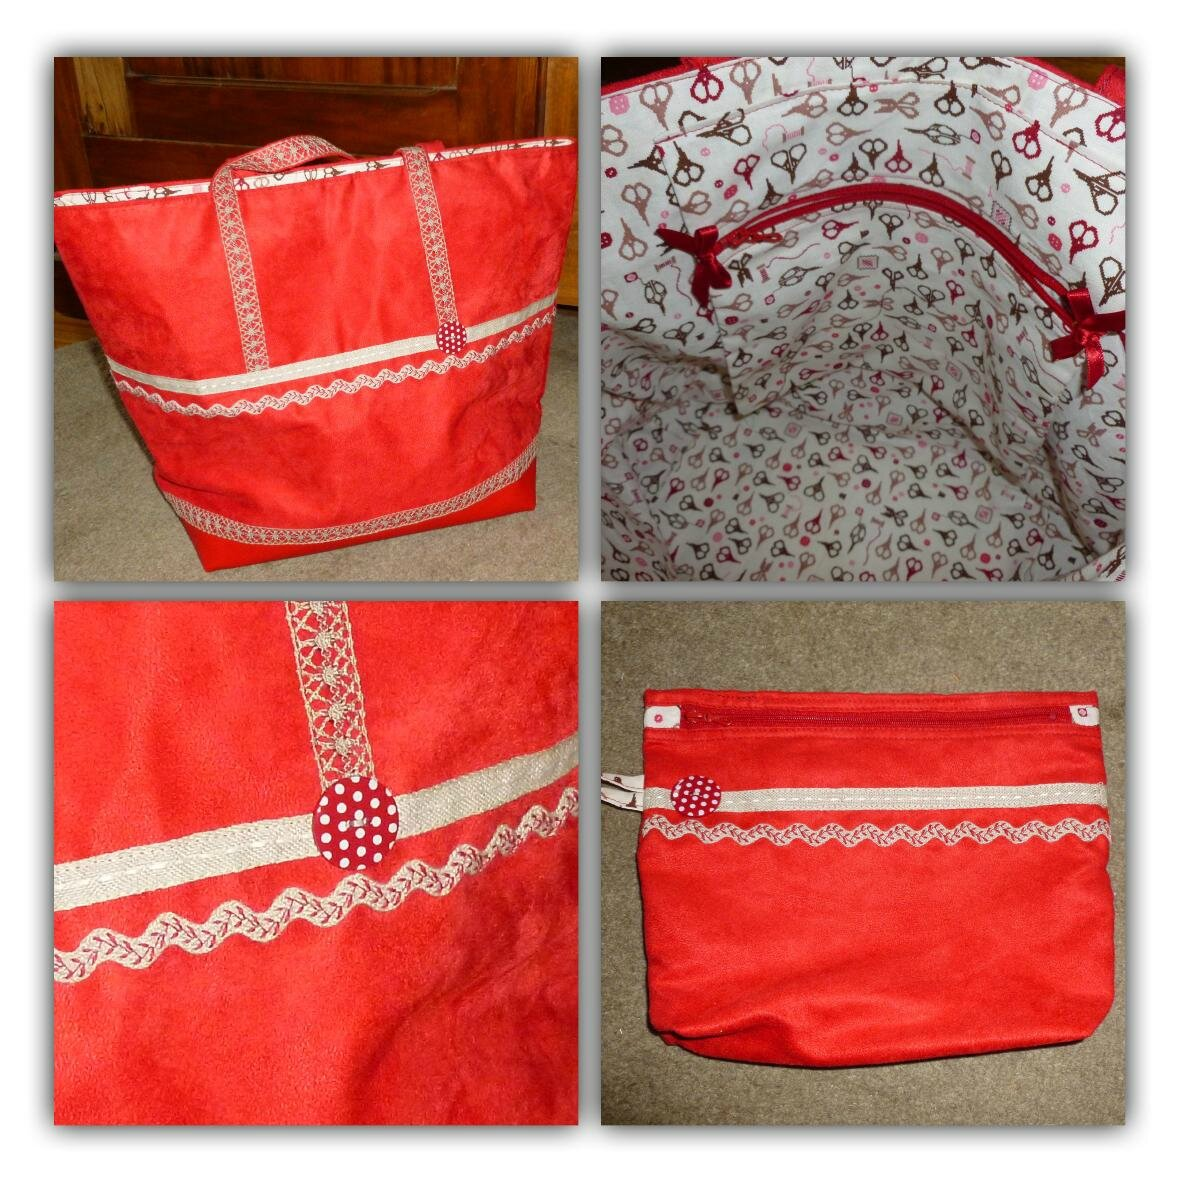 couture_sac_rougeF